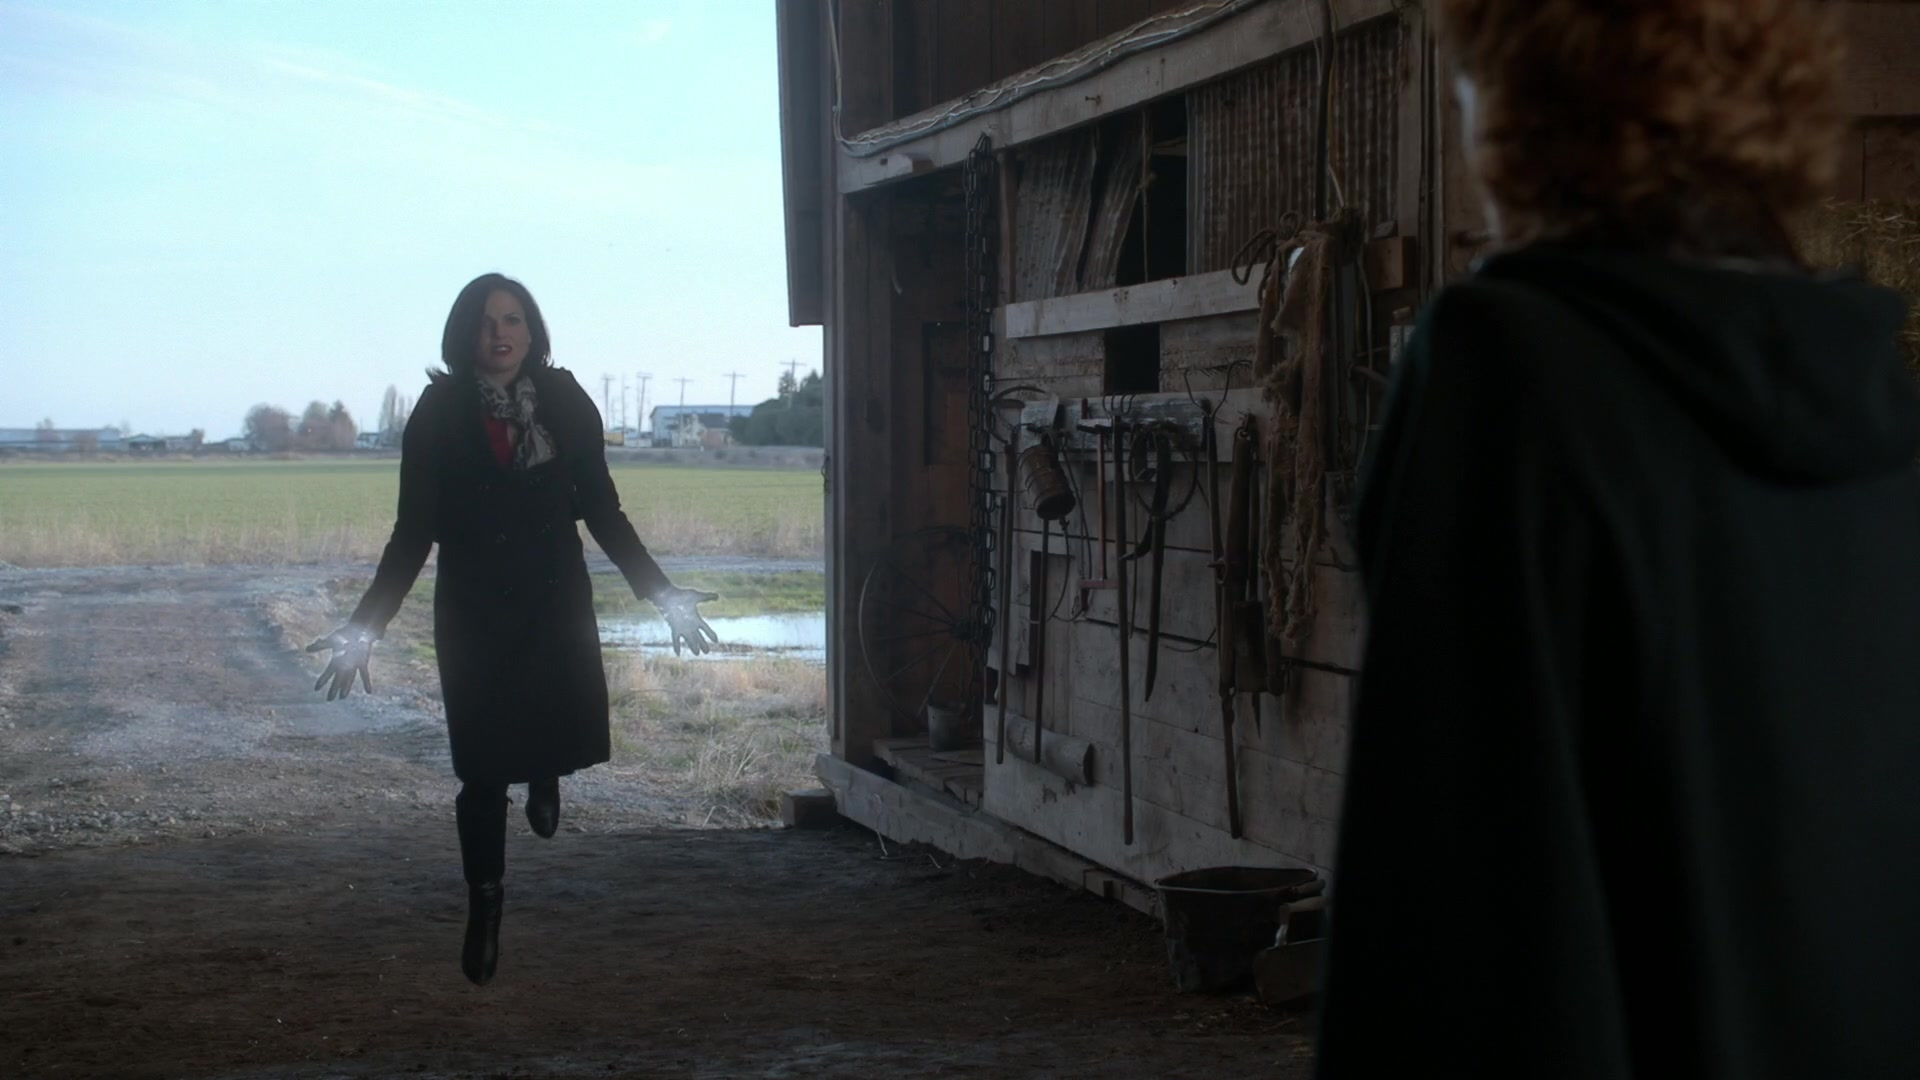 Réactions & discussions  - Page 12 Once_Upon_a_Time_S03E20_Kansas_1080p_KissThemGoodbye_Net_2095